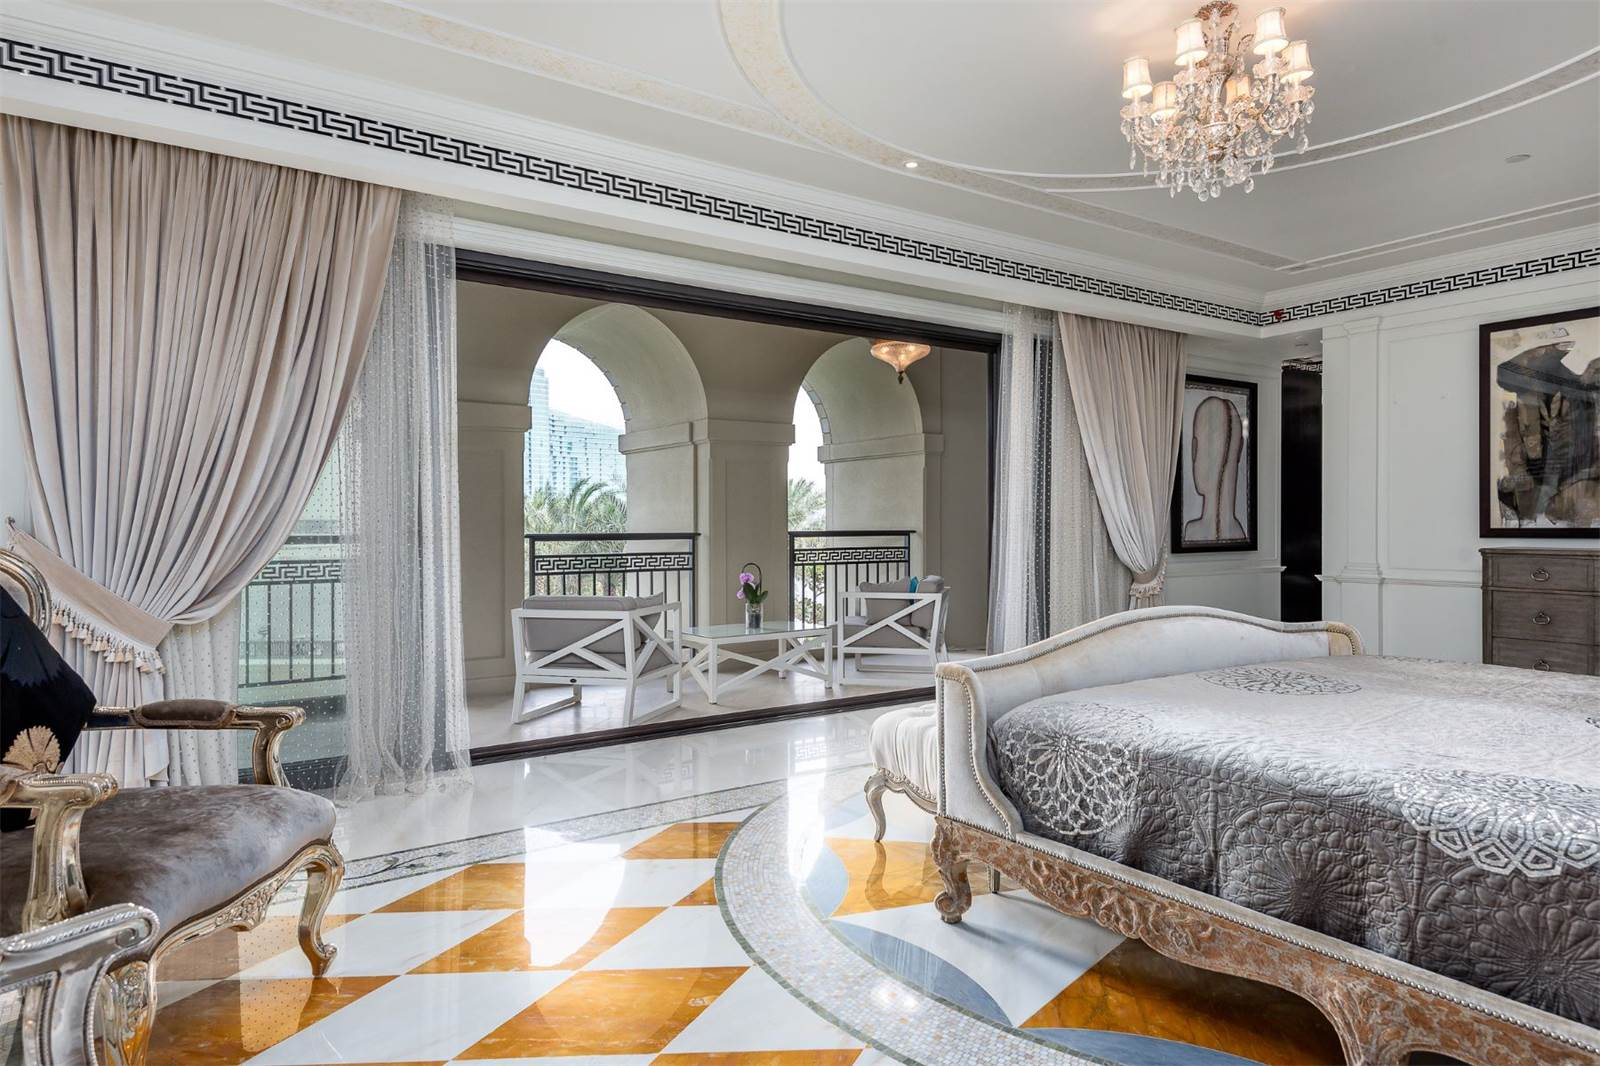 Palazzo Versace Opulent Waterfront Penthouse In Dubai  iDesignArch  Interior Design